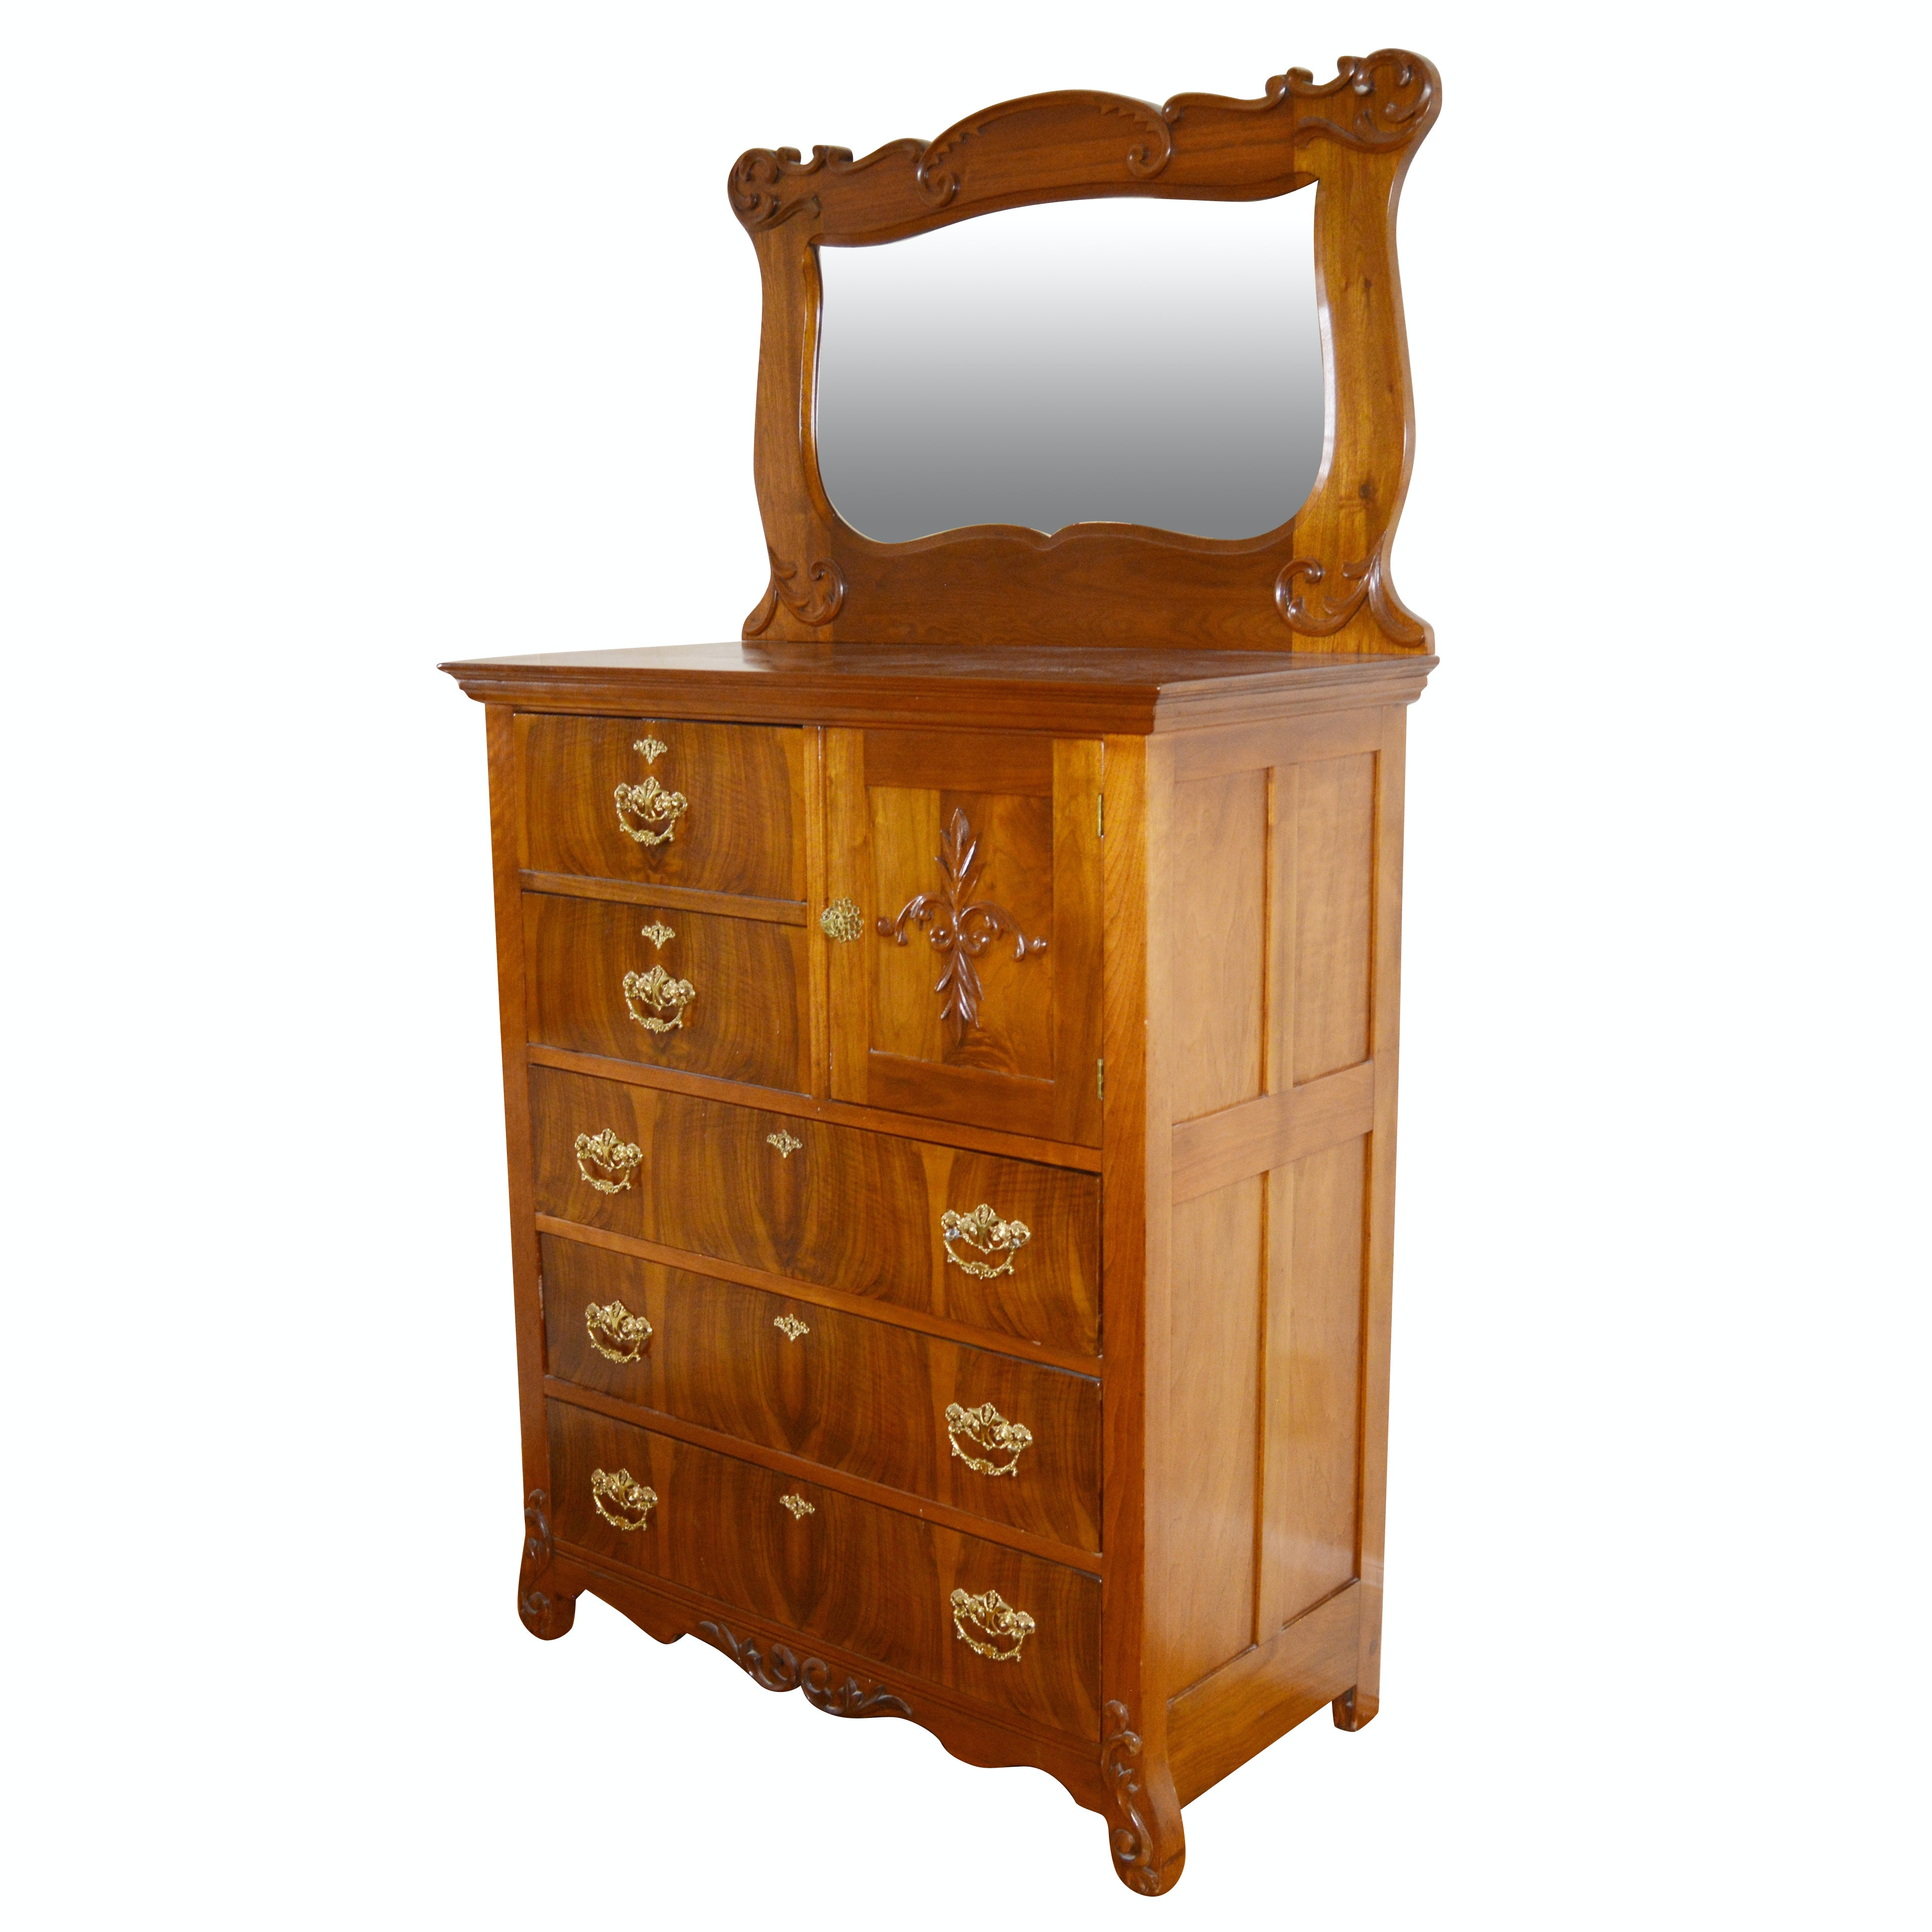 Victorian Style Figured Cherry Chest of Drawers and Mirror, Mid-20th Century